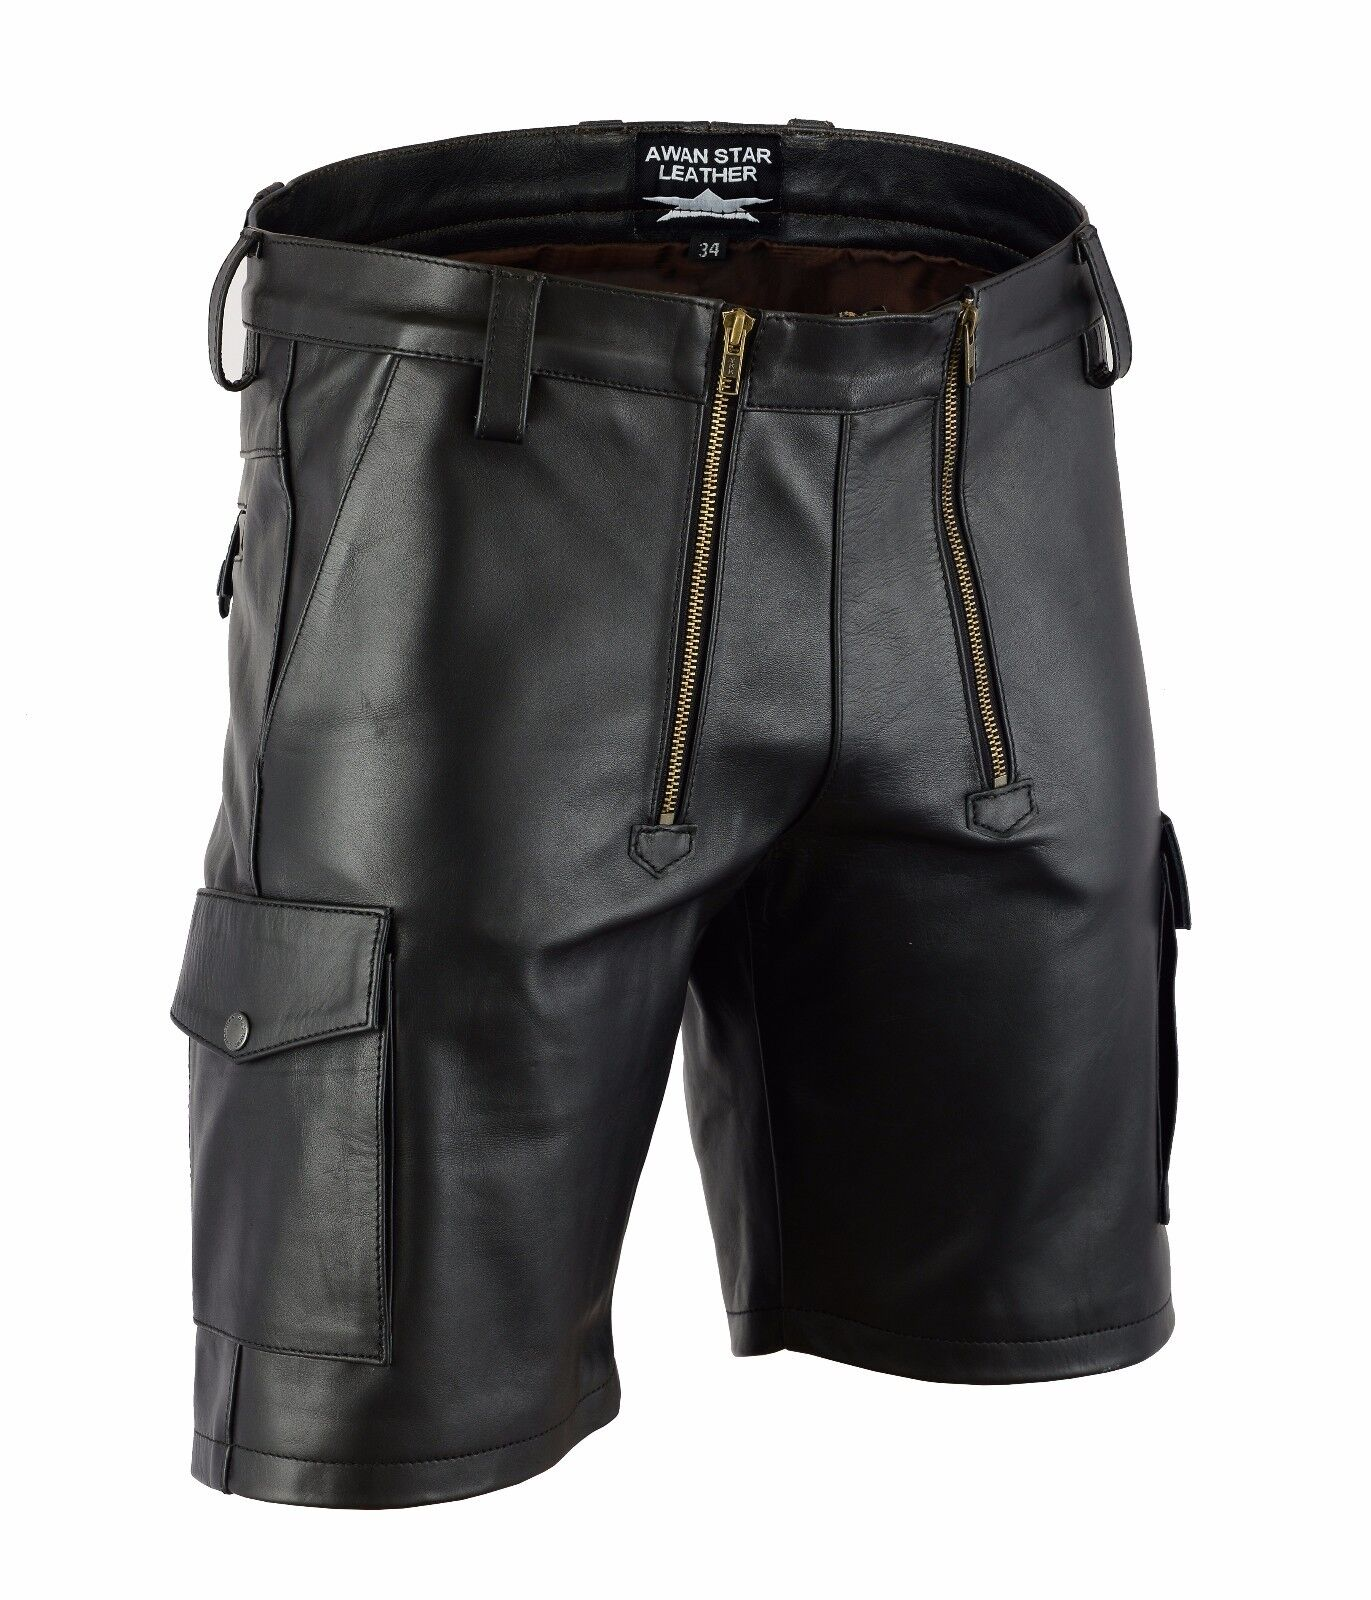 AW-7520 awanstar Zimmermann leder Shorts Soft Leder,ledershorts Carpenter Pants